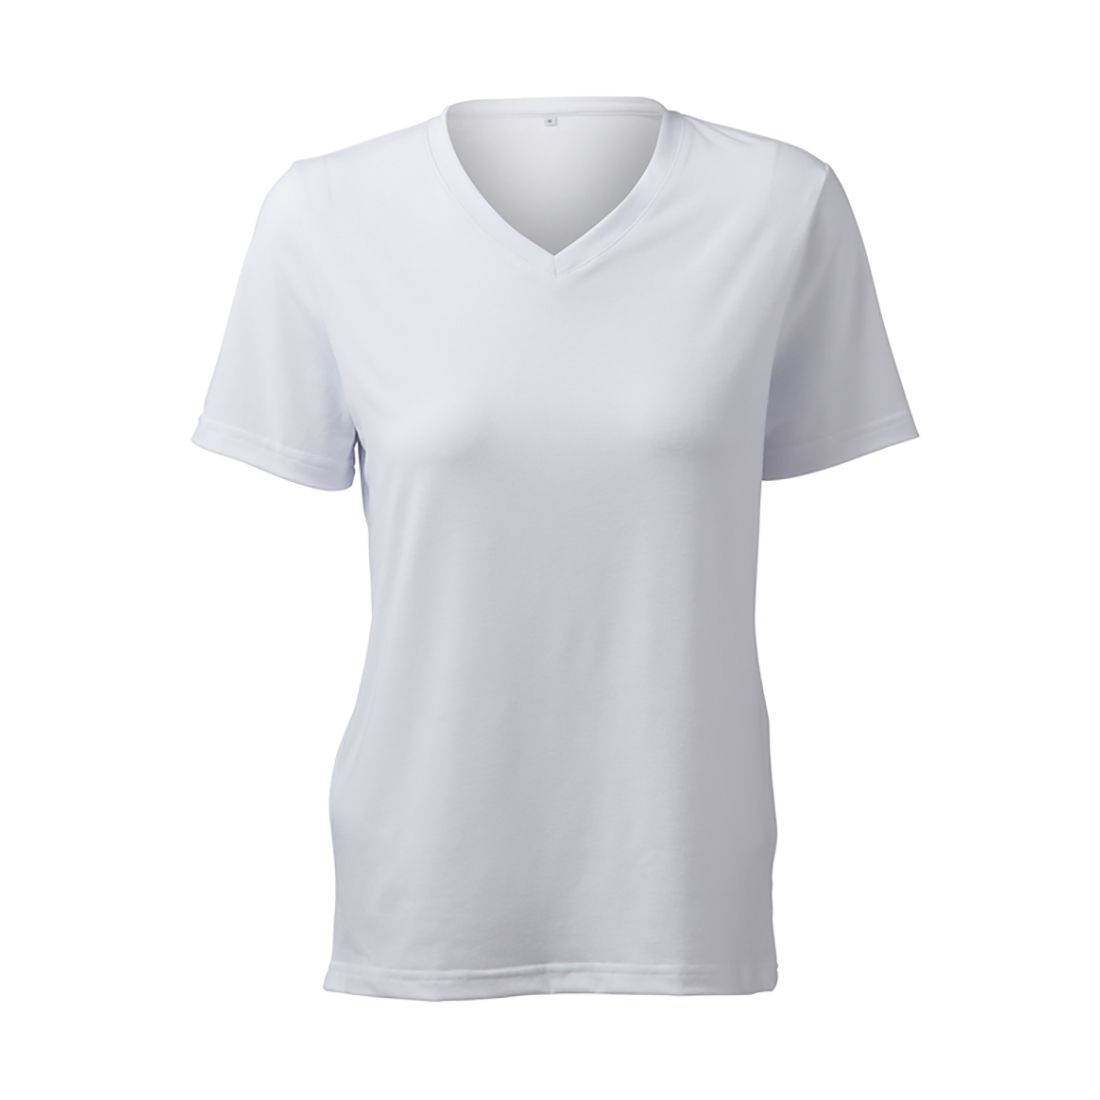 Women's T -Shirt Blank, V -Neck